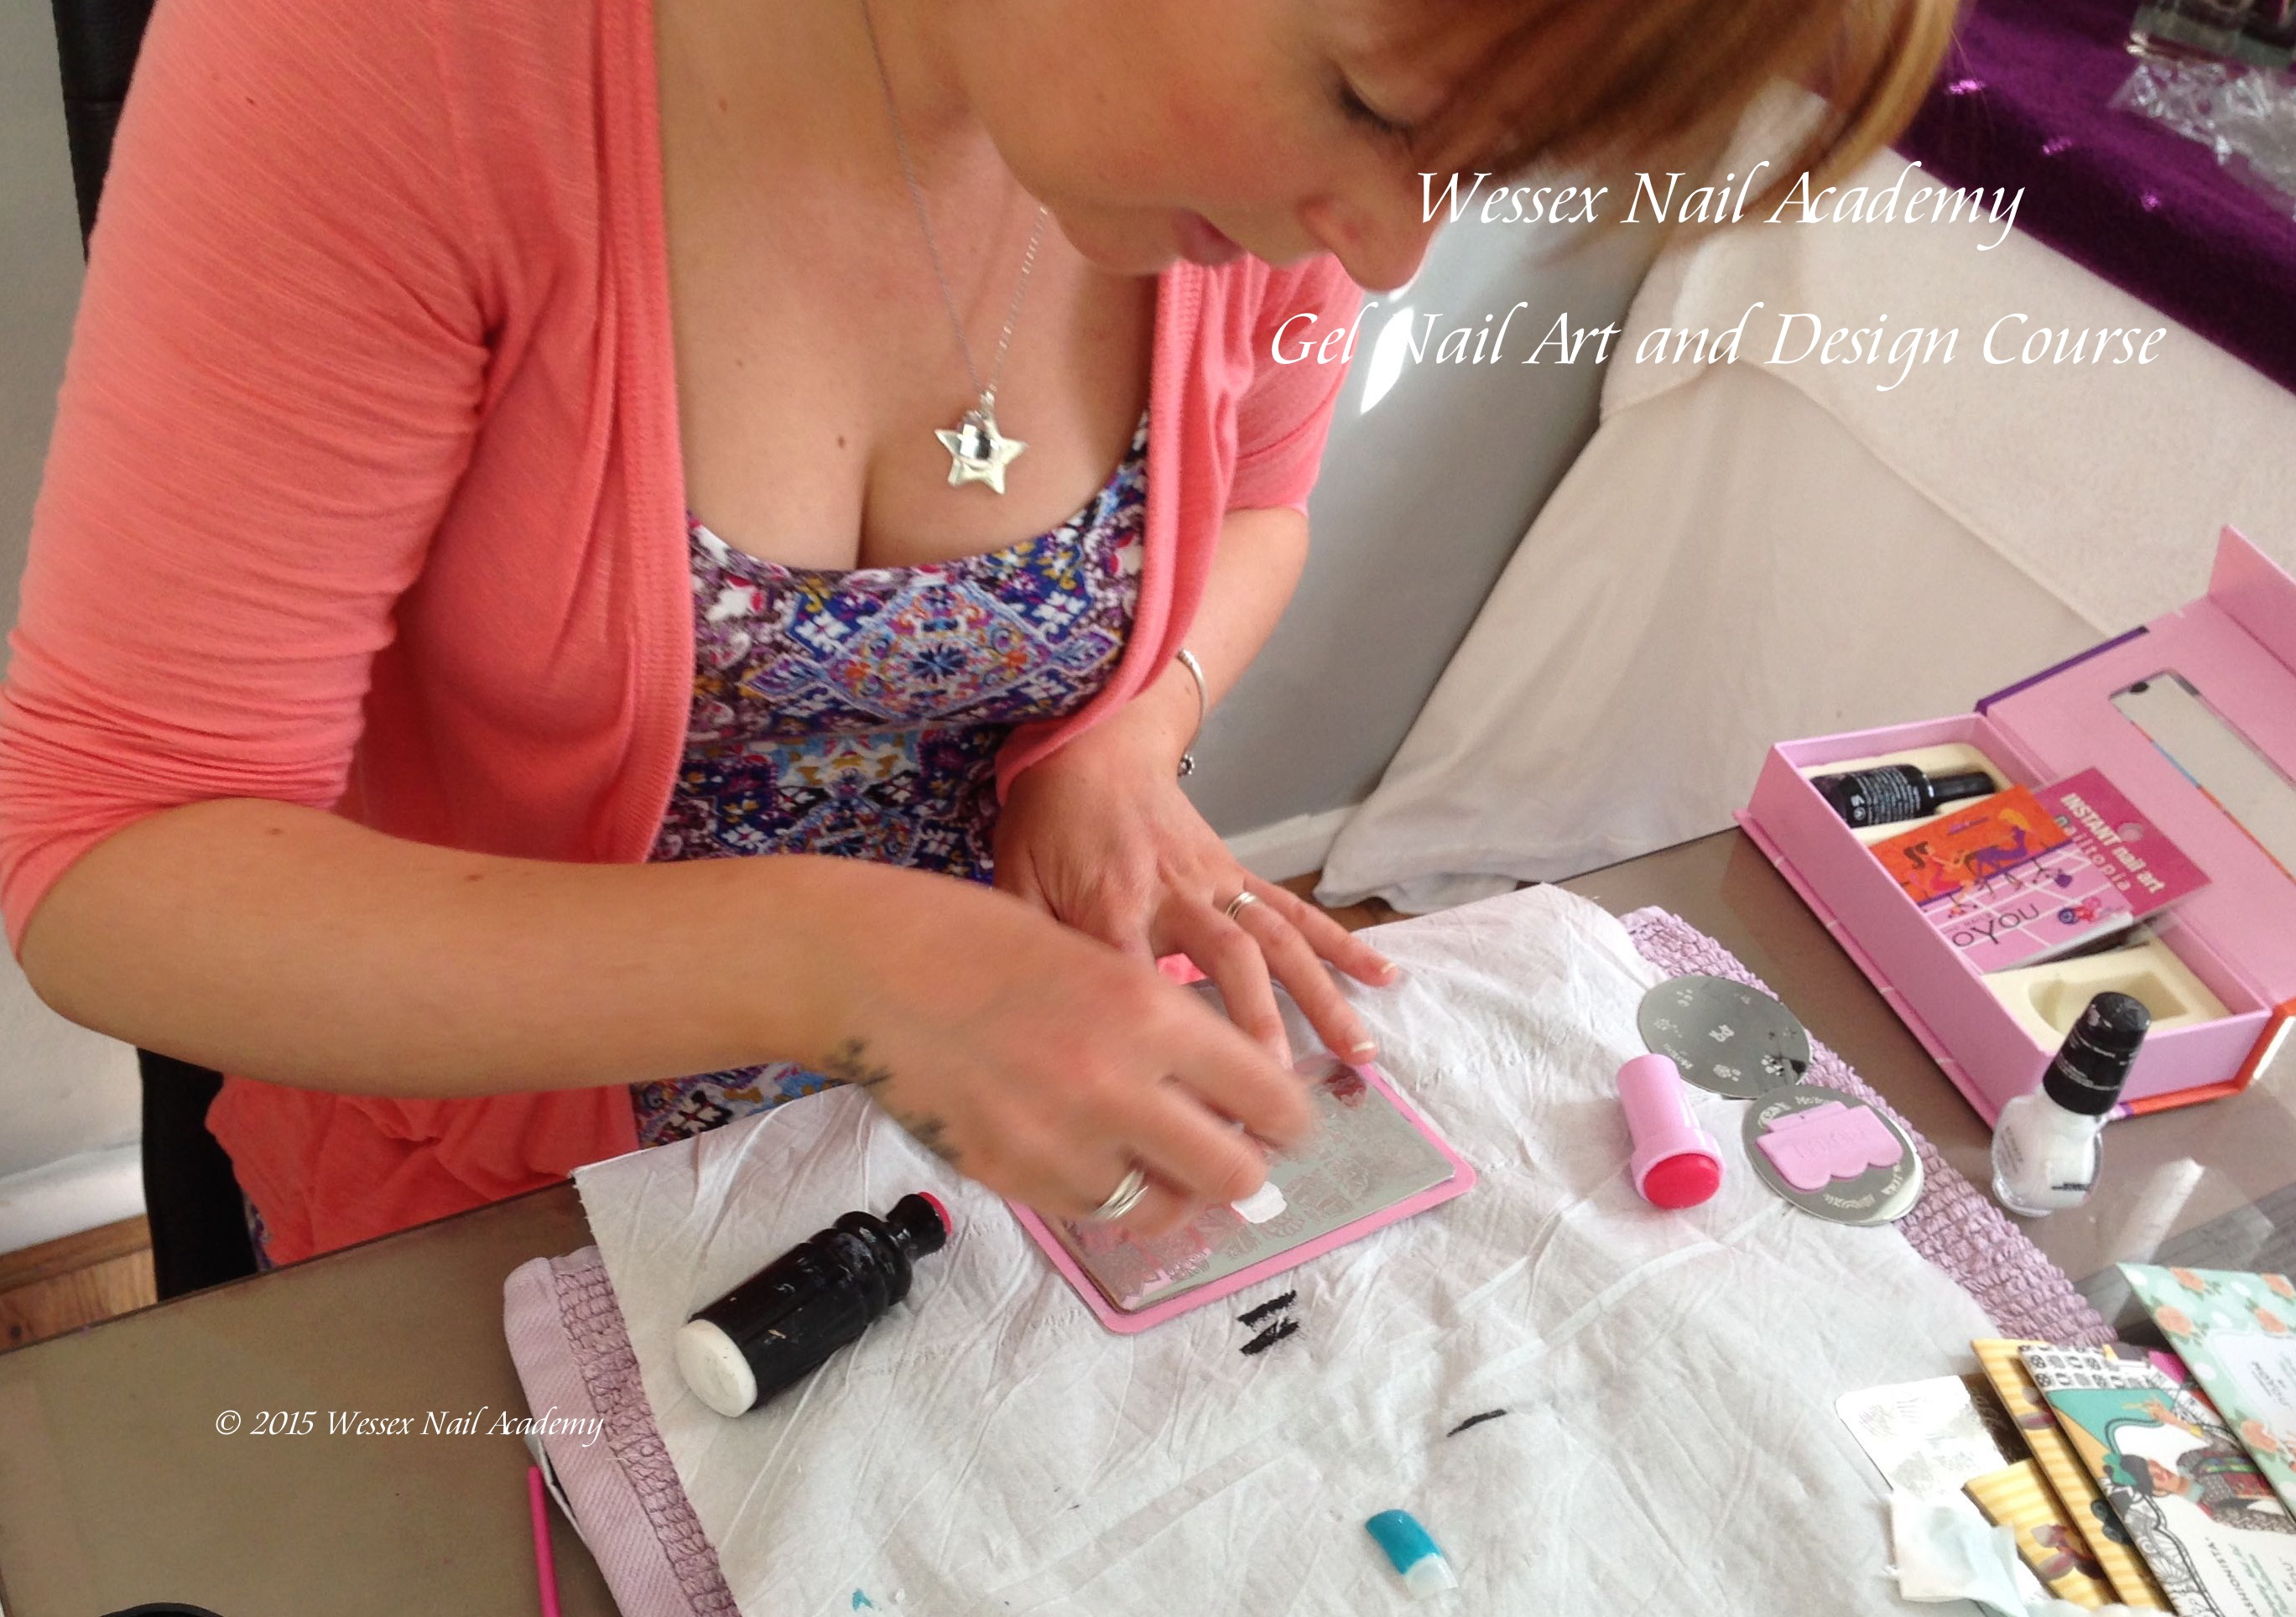 Nail Art Courses, Nail extension training, nail training course, Wessex Nail Academy Okeford Fitzpaine, Dorset